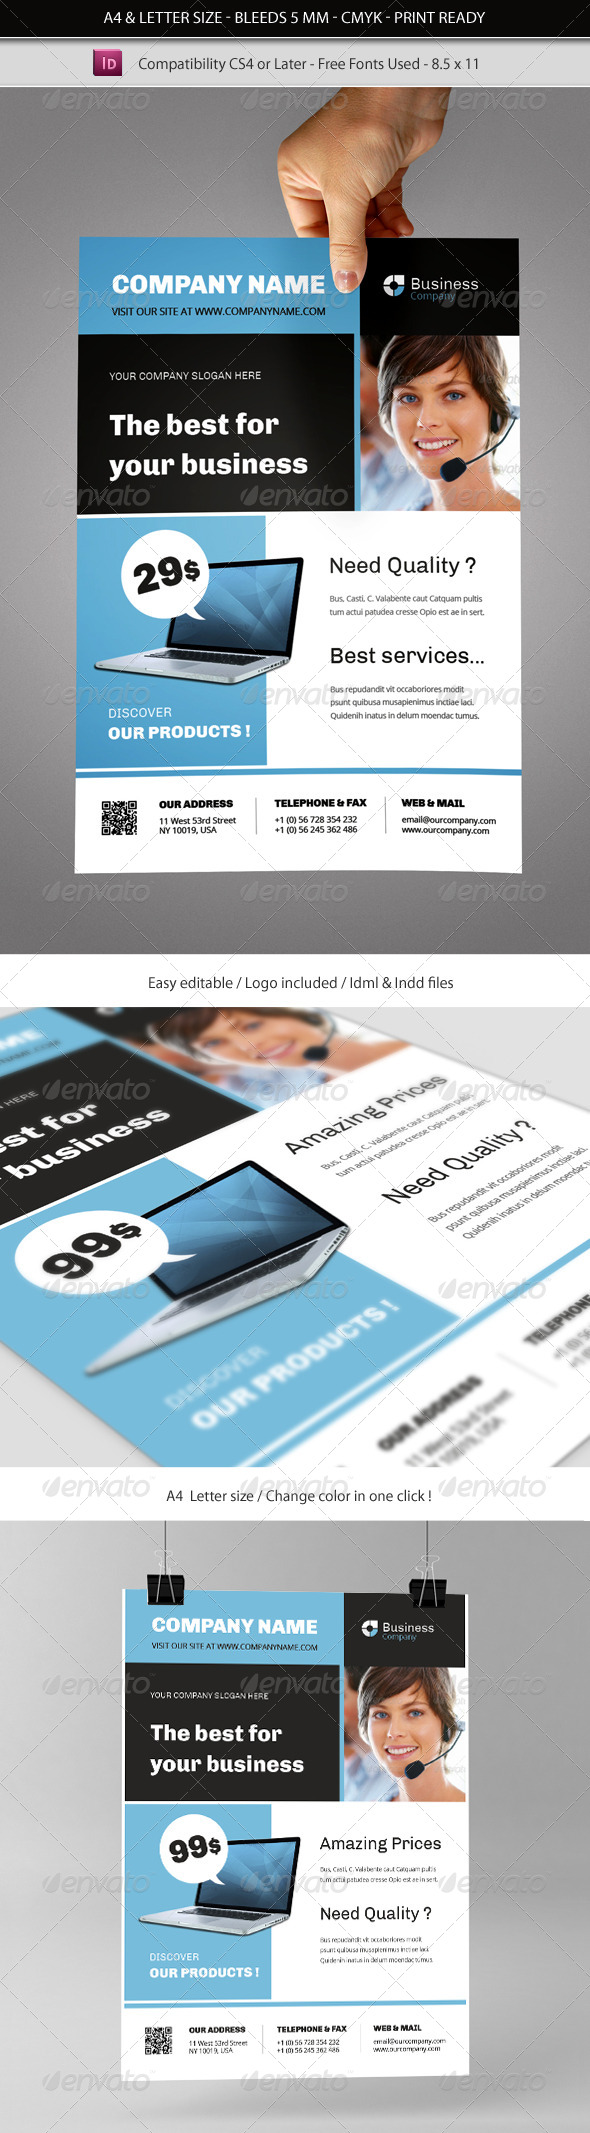 Multipurpose Commerce Flyer Indesign Template - Commerce Flyers